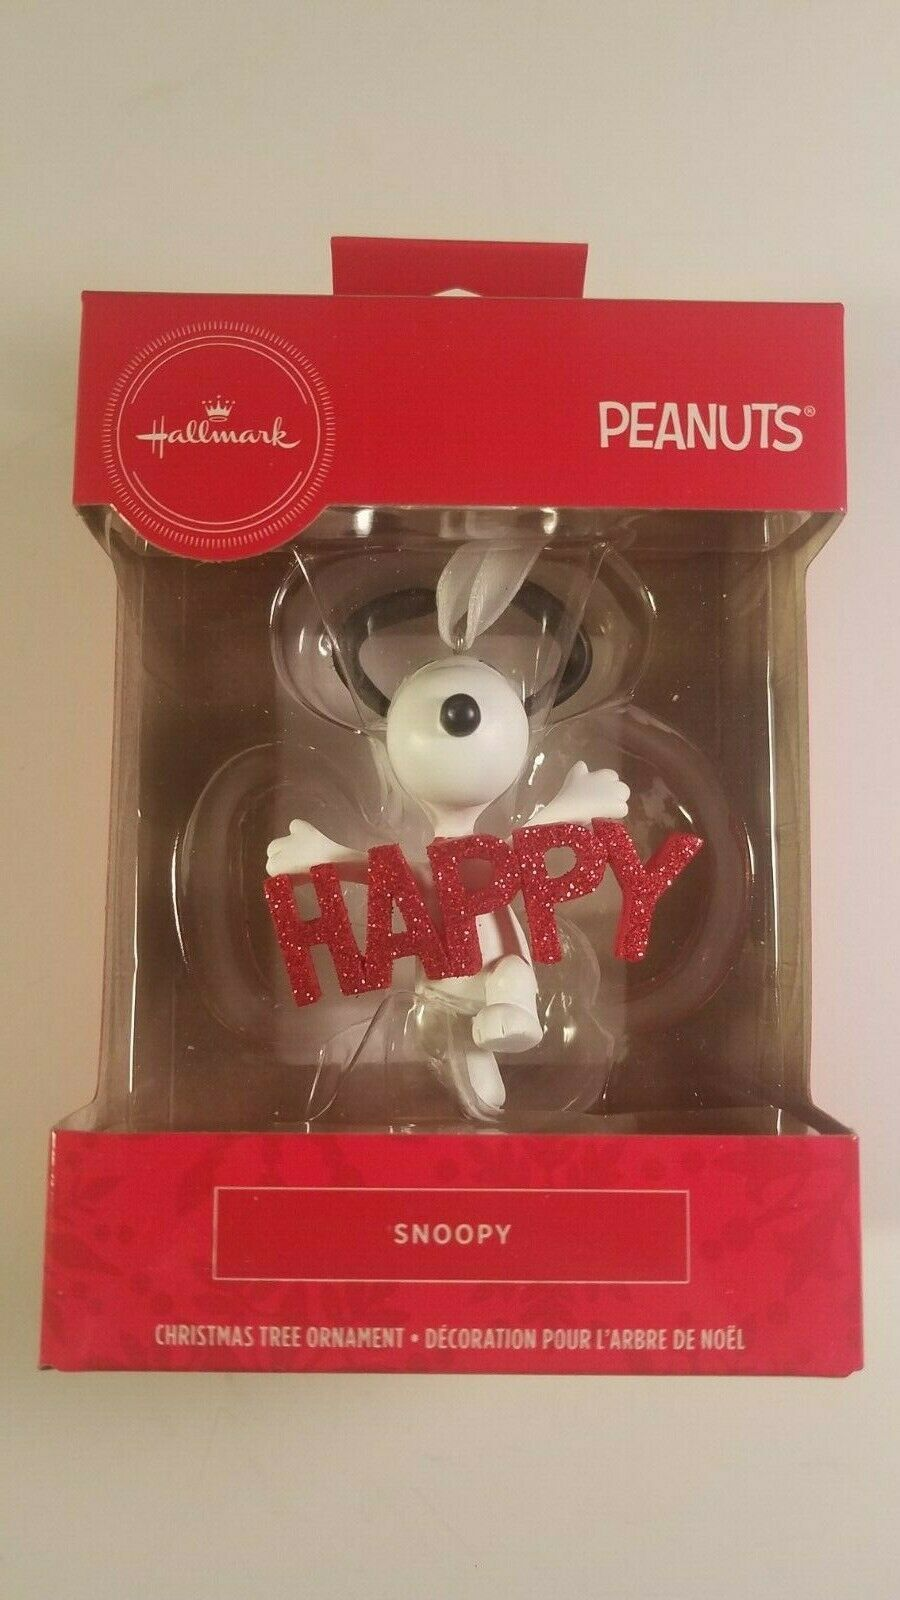 Primary image for hallmark ornament snoopy happy peanuts christmas tree decor new in box